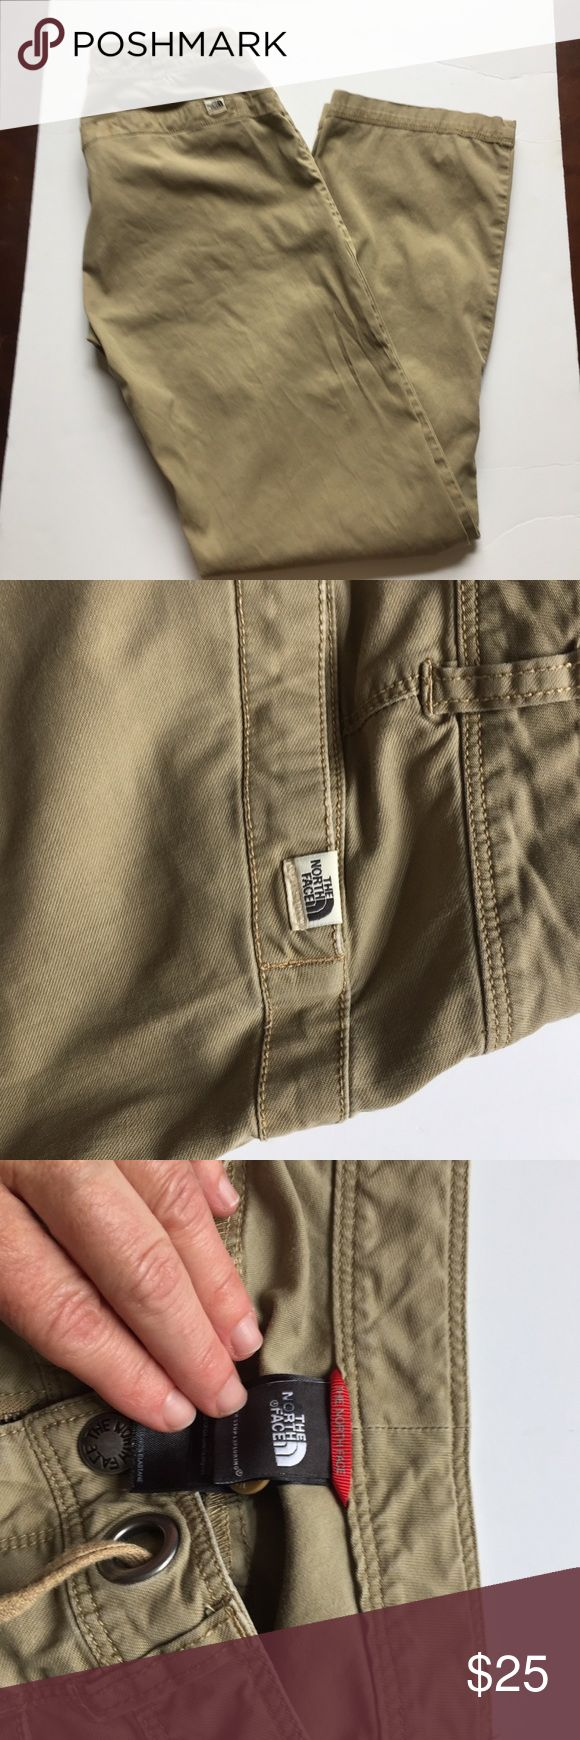 The North Face Noble stretch rollup pants size 8 Notable for their comfort and easy going style. Excellent condition. Cuffs can be rolled up and secured with button tabs for capris length. UPF 30 , stash pockets, adjustable drawstring as well as zipper and snap closure. Size 8 which according to NF website id also considered a medoum. Inseam measures 30, waist is 14 measured in back, leg opening is 7.5. These seems like new, awesome pants, khaki color, perfect for hiking, walking, biking or…